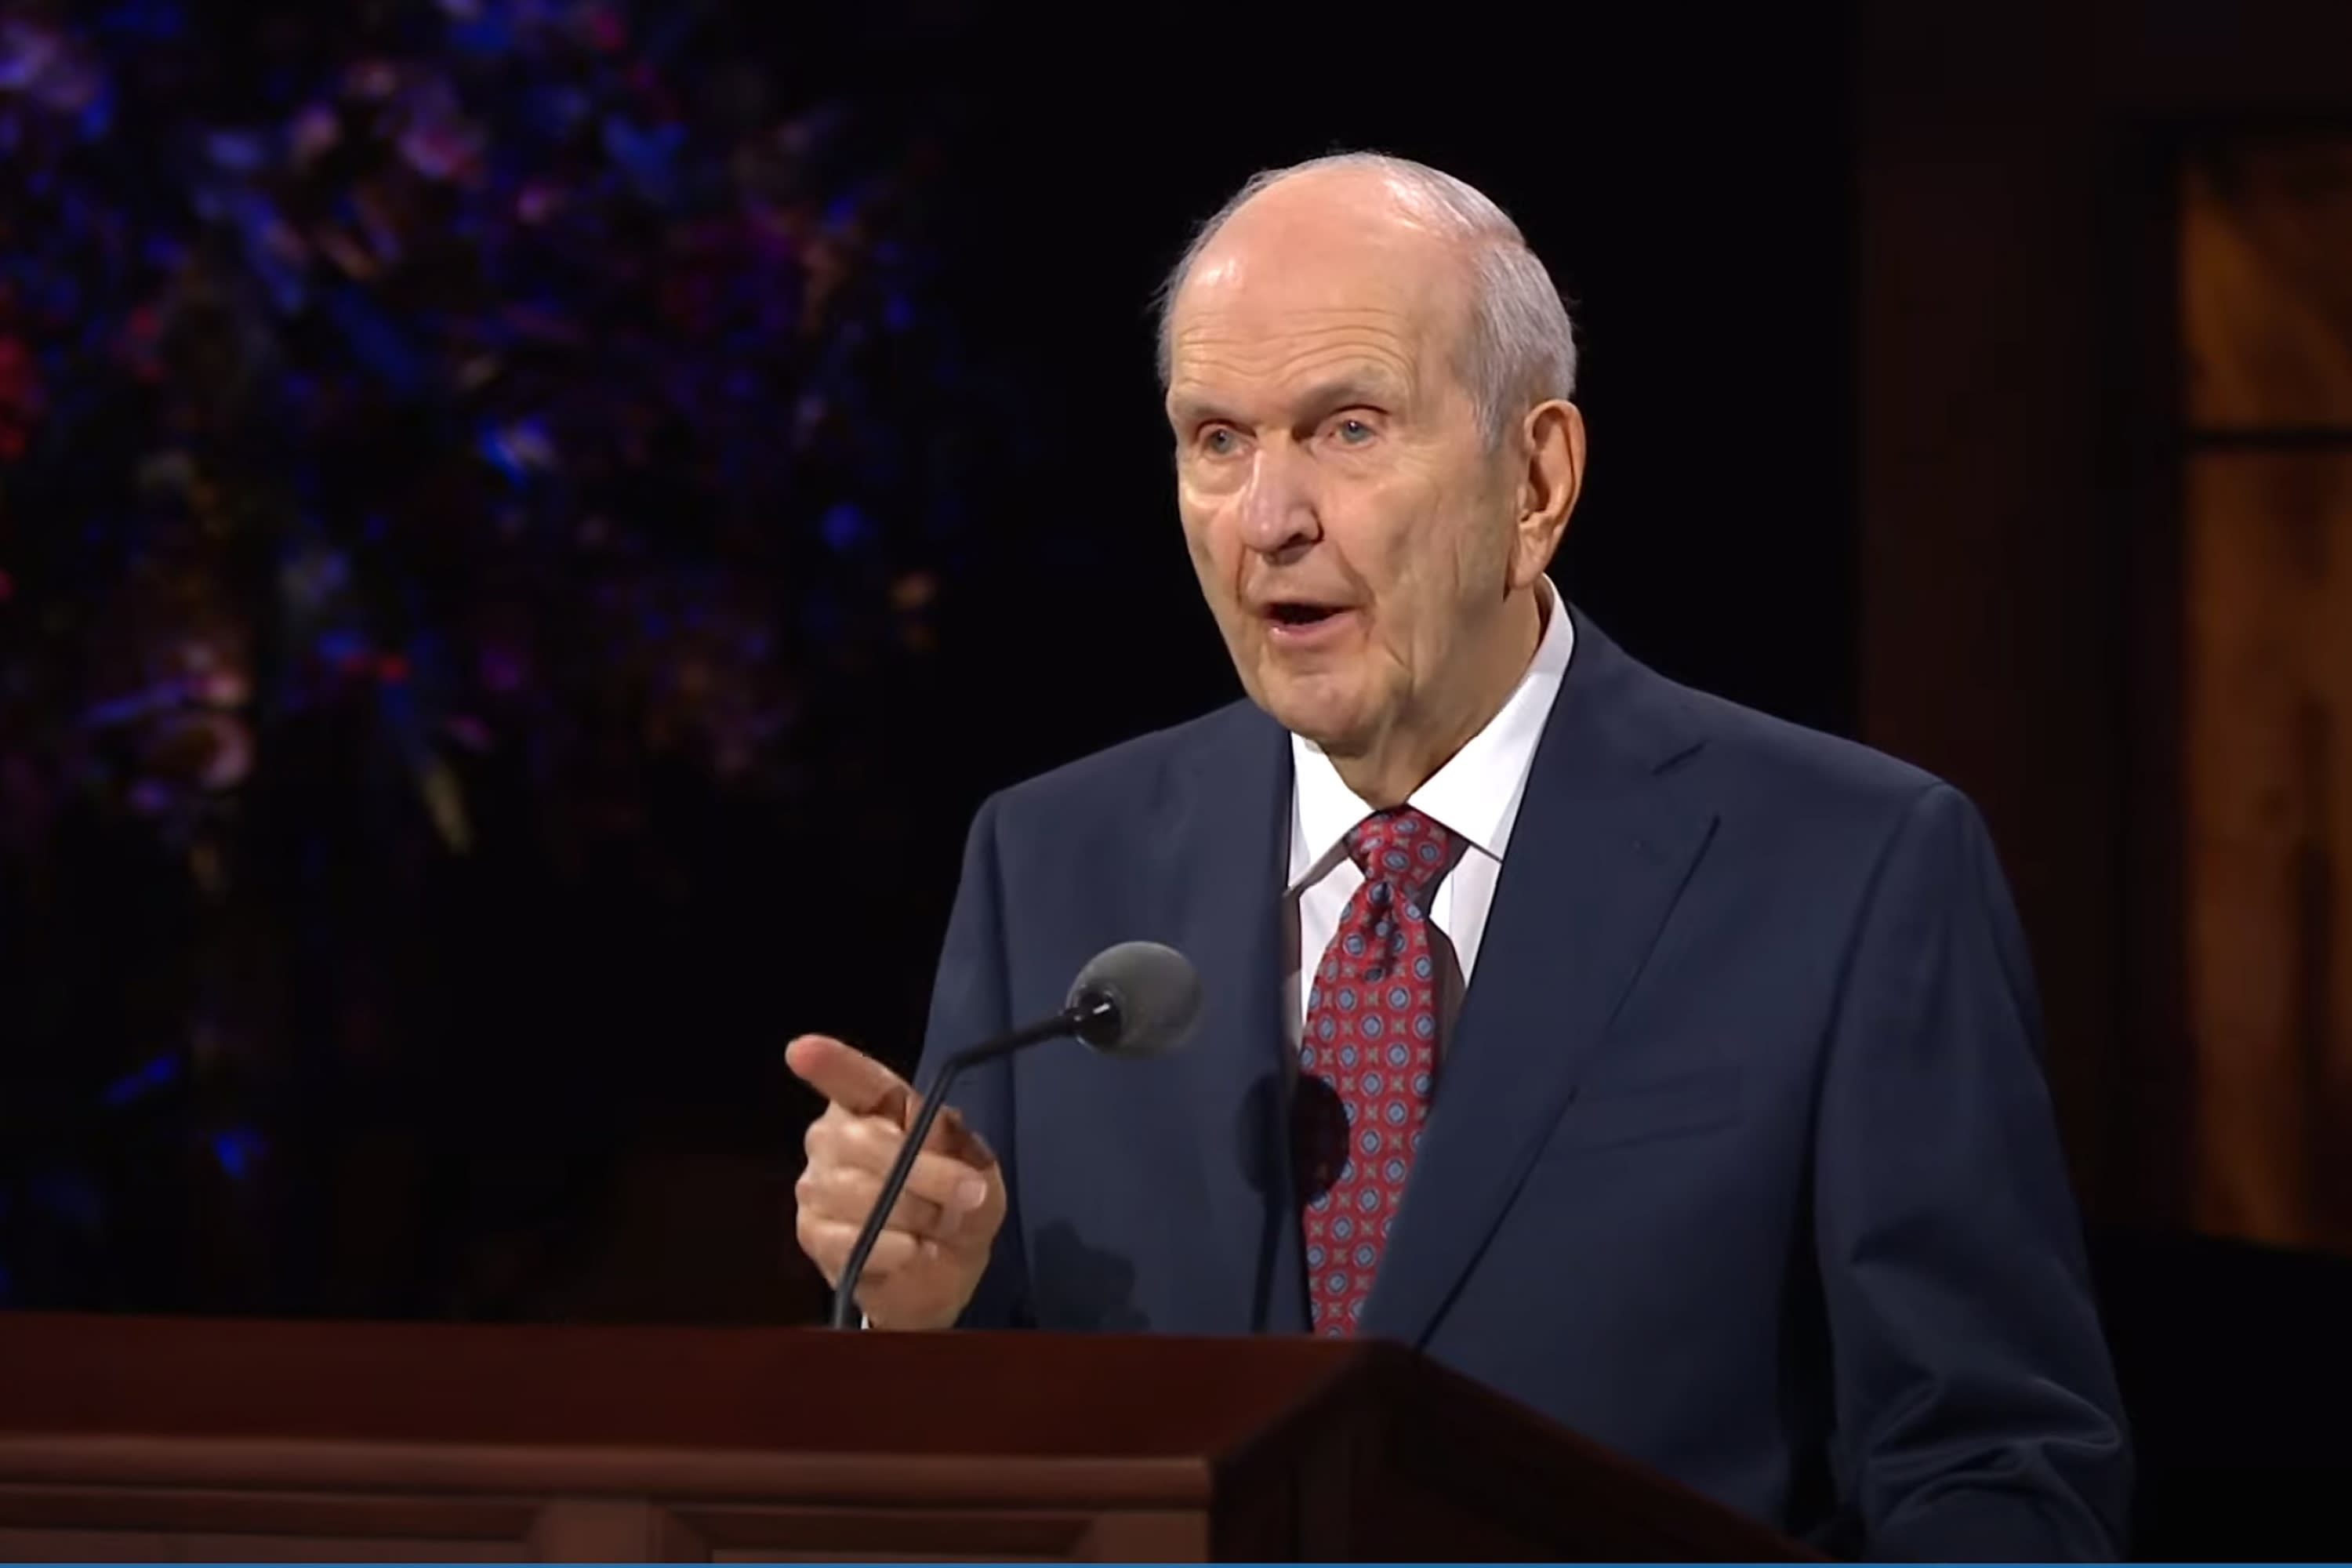 In this Saturday, Oct. 3, 2020, video image streamed by The Salt Lake Temple of The Church of Jesus Christ of Latter-day Saints, church President Russell M. Nelson speaks during the opening of the 190th Semiannual General Conference at the Conference Center Theater on Temple Square in Salt Lake City. The twice-annual conference kicked off Saturday without anyone attending in person and top leaders sitting some 6-feet apart inside an empty room as the faith takes precautions to avoid the spread of the coronavirus. A livestream of the conference showed a few of the faith's top leaders sitting alone inside a small auditorium in Salt Lake City, Normally, top leaders sit side-by-side on stage with the religion's well-known choir behind them and some 20,000 people watching. (The Church of Jesus Christ of Latter-day Saints via AP)